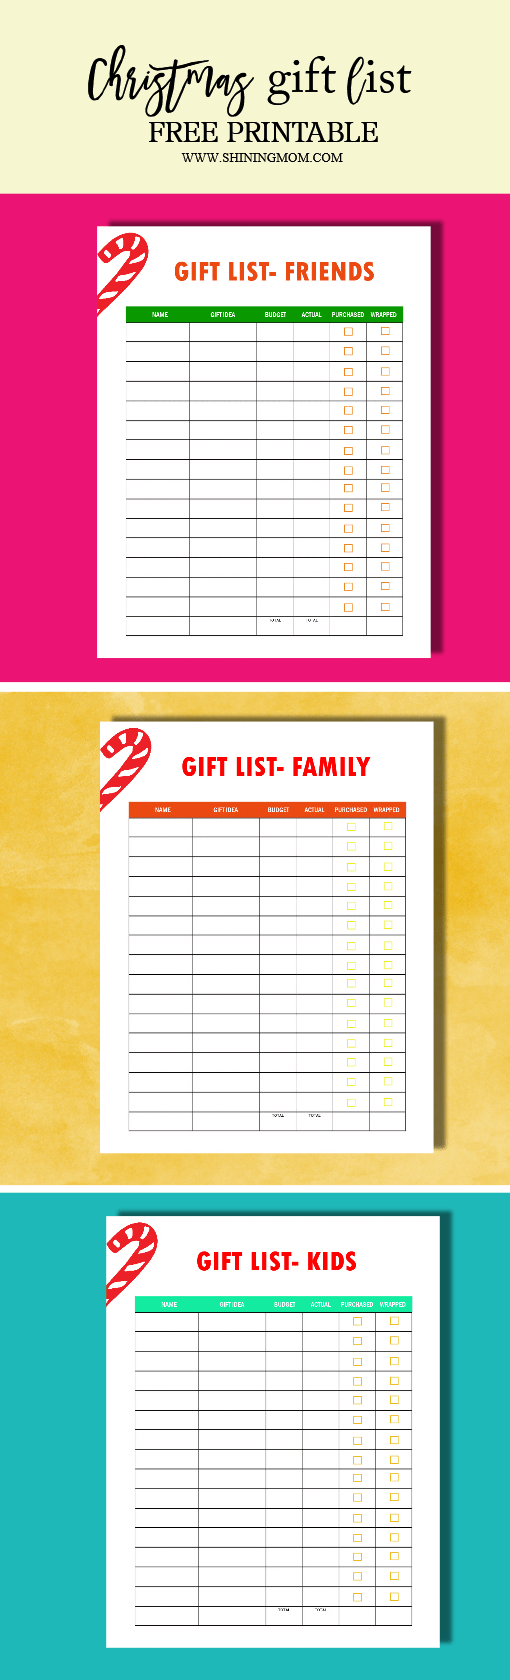 Use this FREE Printable Christmas Gift List